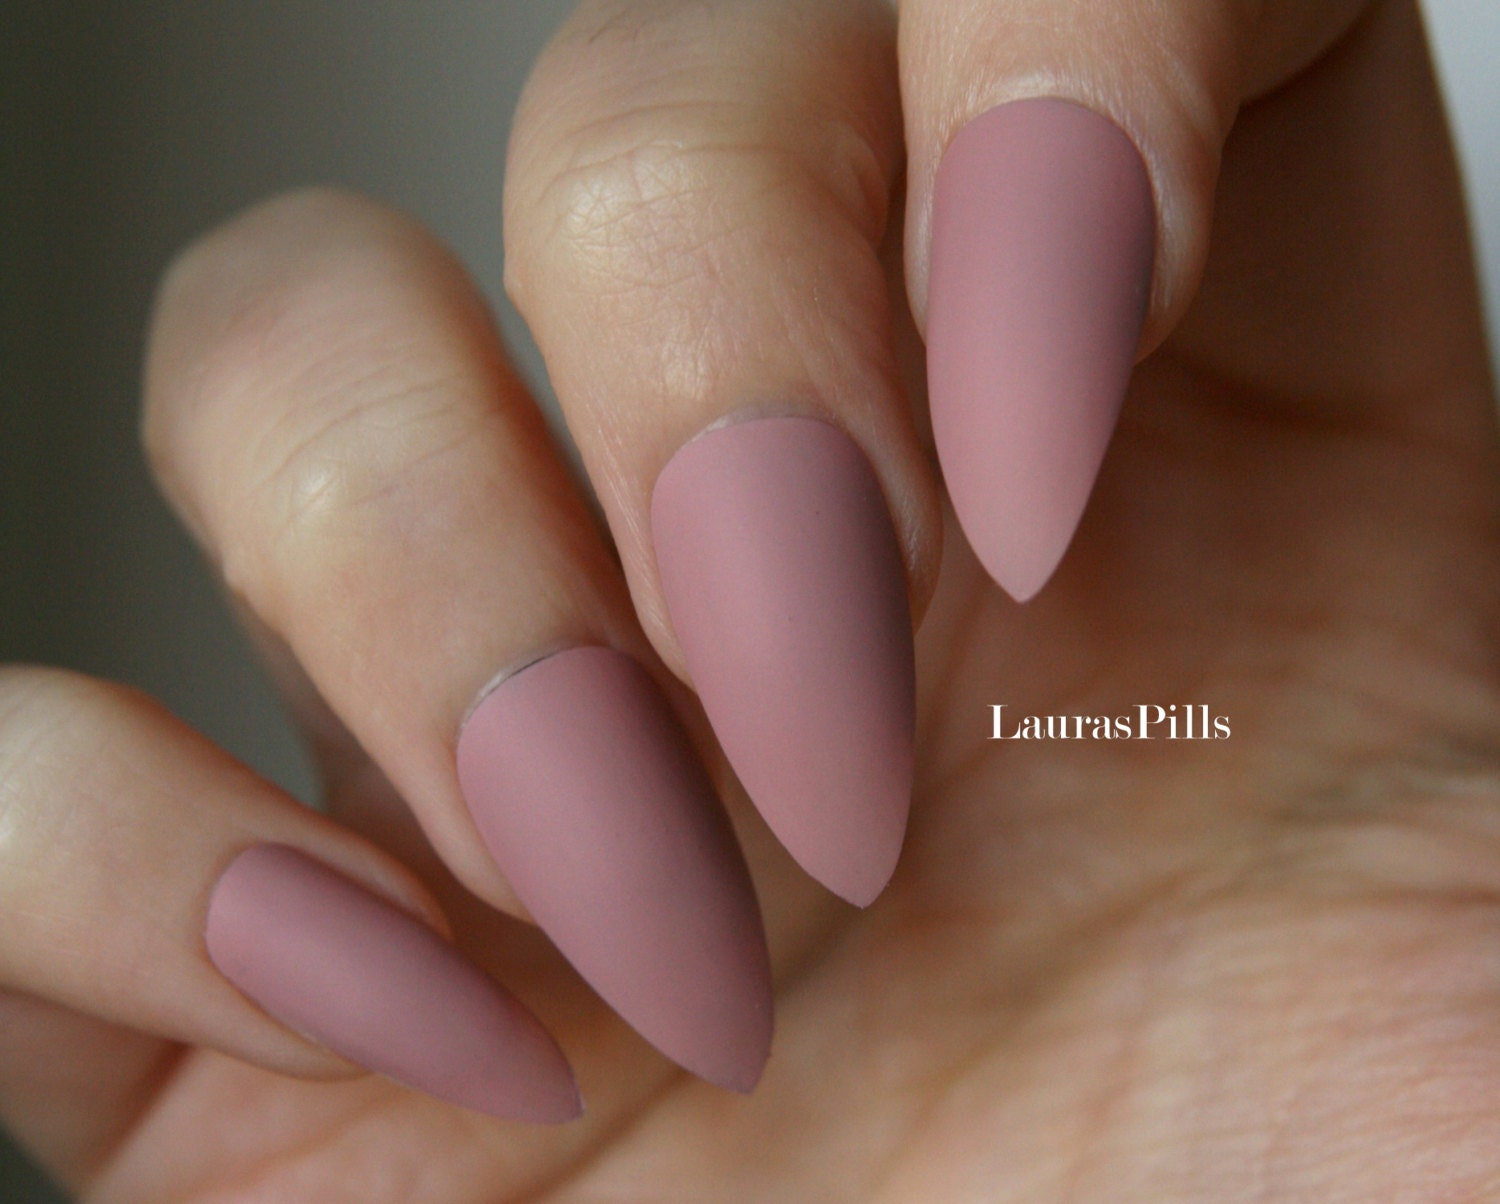 Taupe cashmere stiletto false nails Matte or glossy Nude